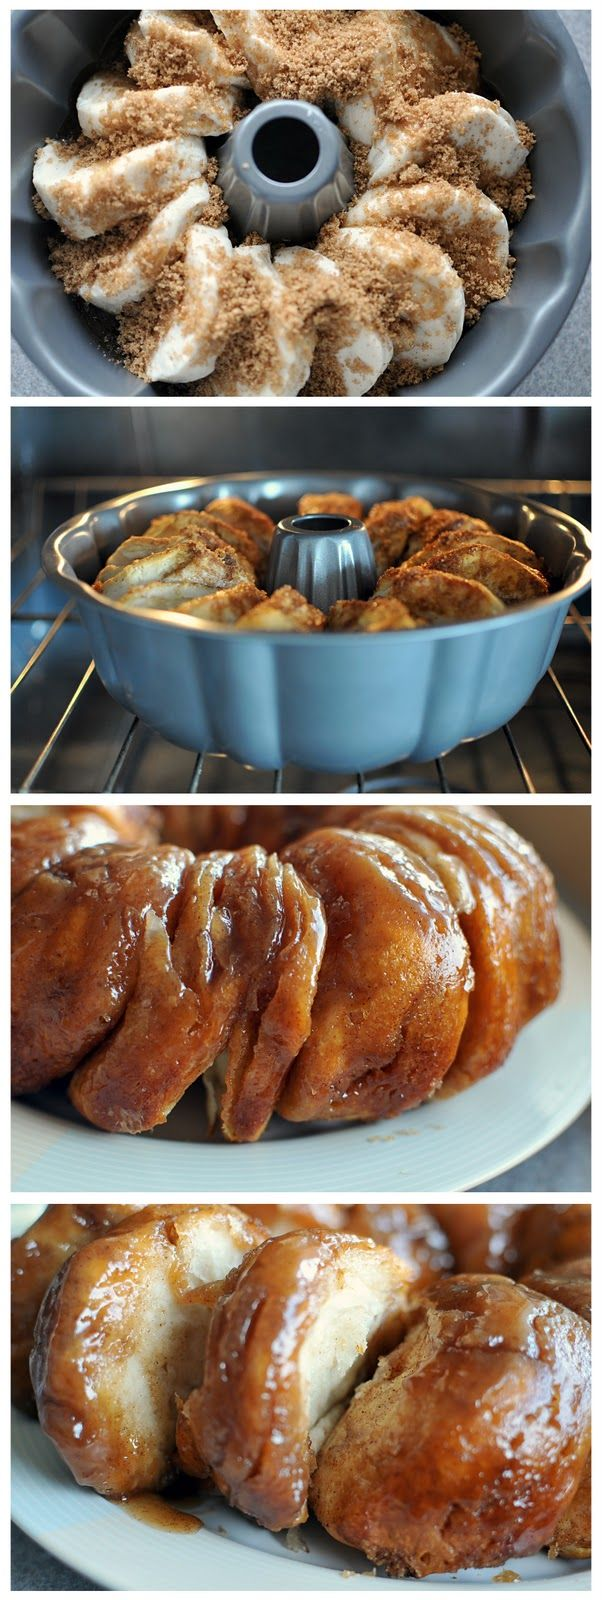 Christmas Morning Treats!: Buttermilk Biscuits, Breakfast Rings, Bundt Pan, Recipes, Biscuits Cinnamon Rolls, Monkey Breads, Christmas Mornings, Sticky Buns, Buns Breakfast